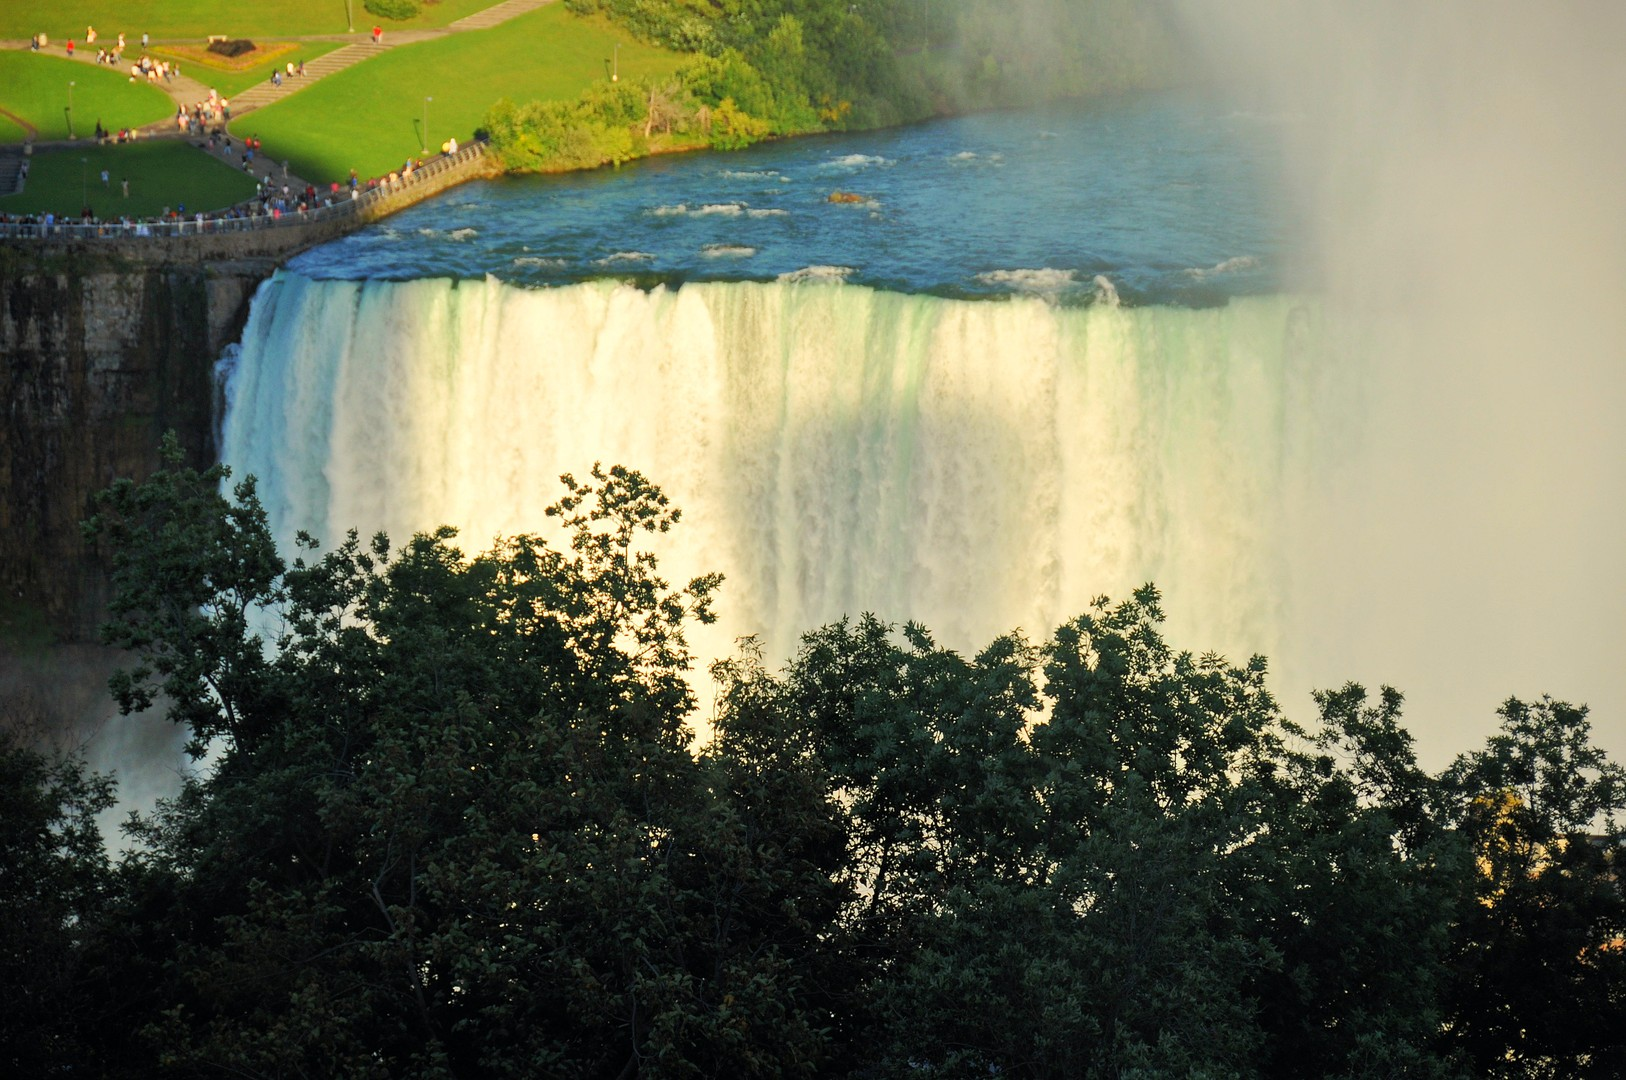 Another shot of Niagara Fall from hotel room